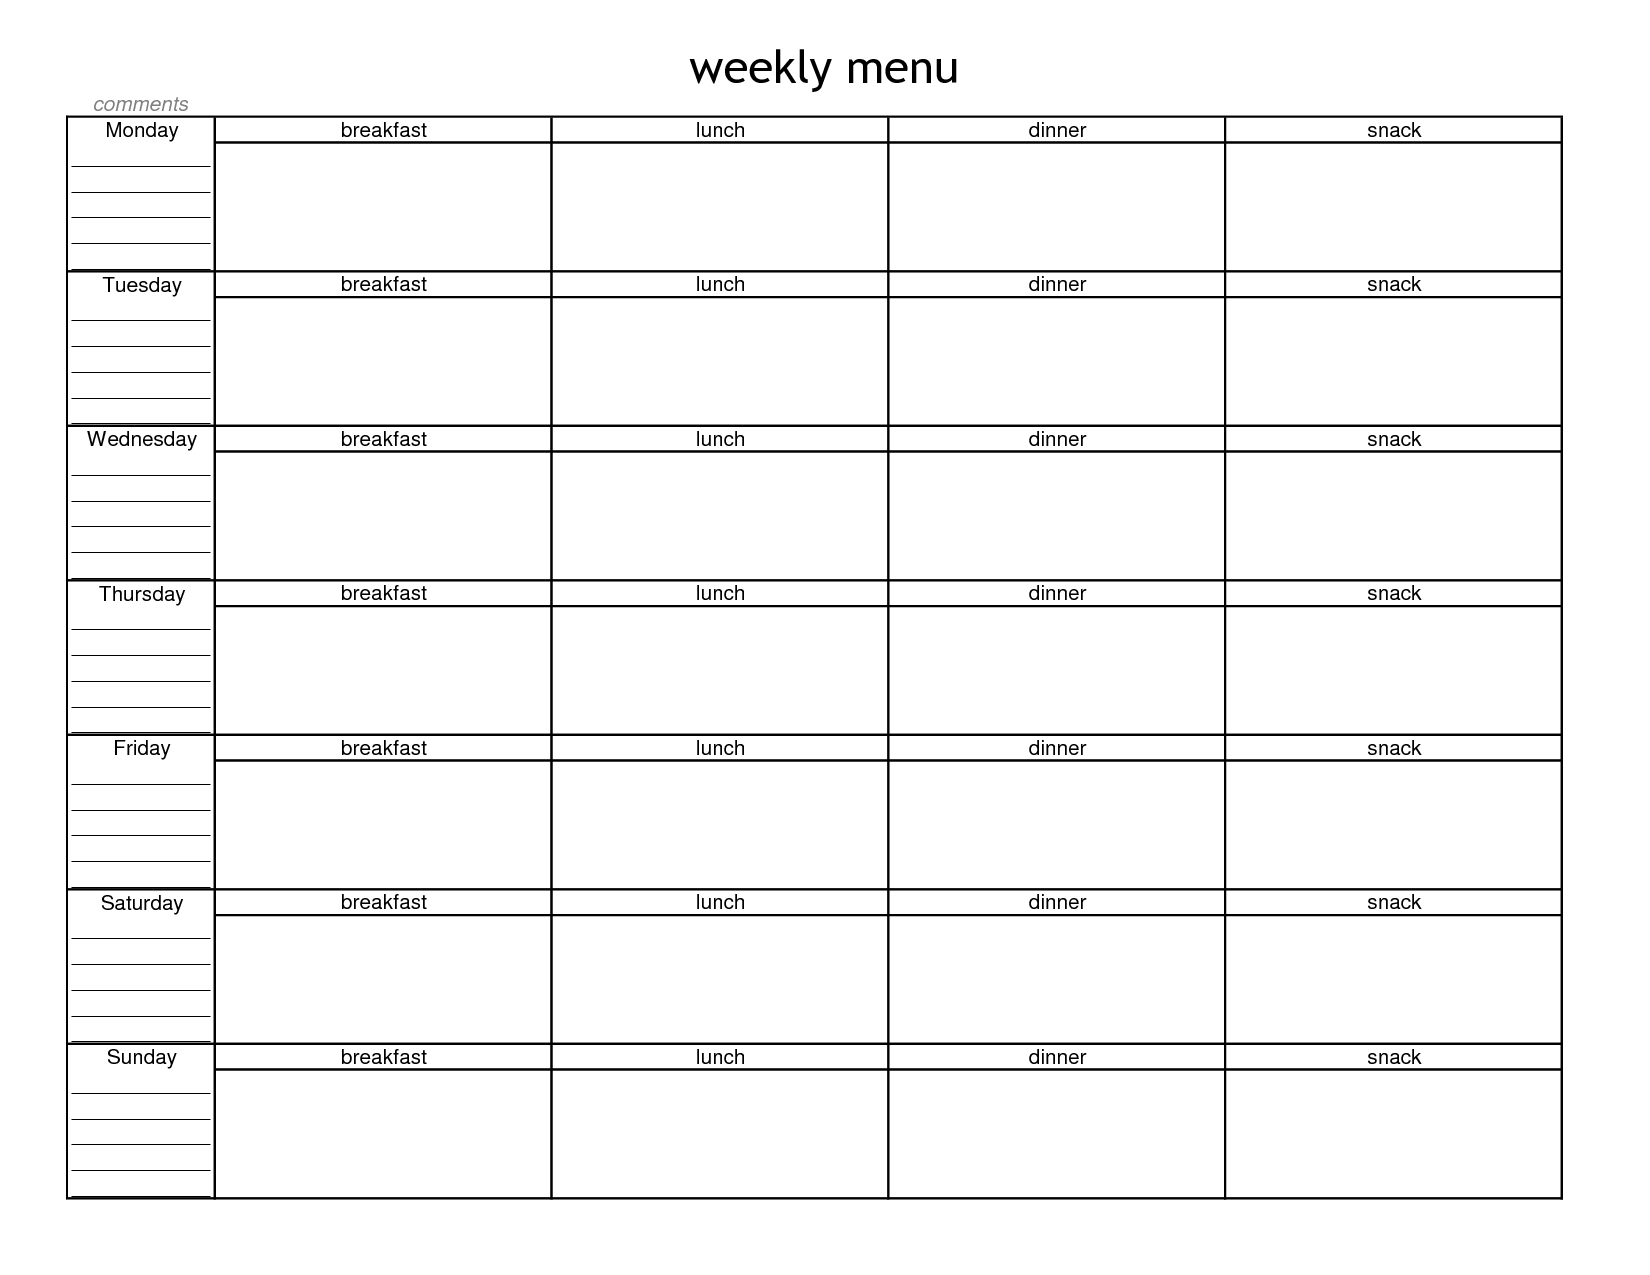 Monthly Meal Planner Template | www.galleryhip.com - The Hippest Pics